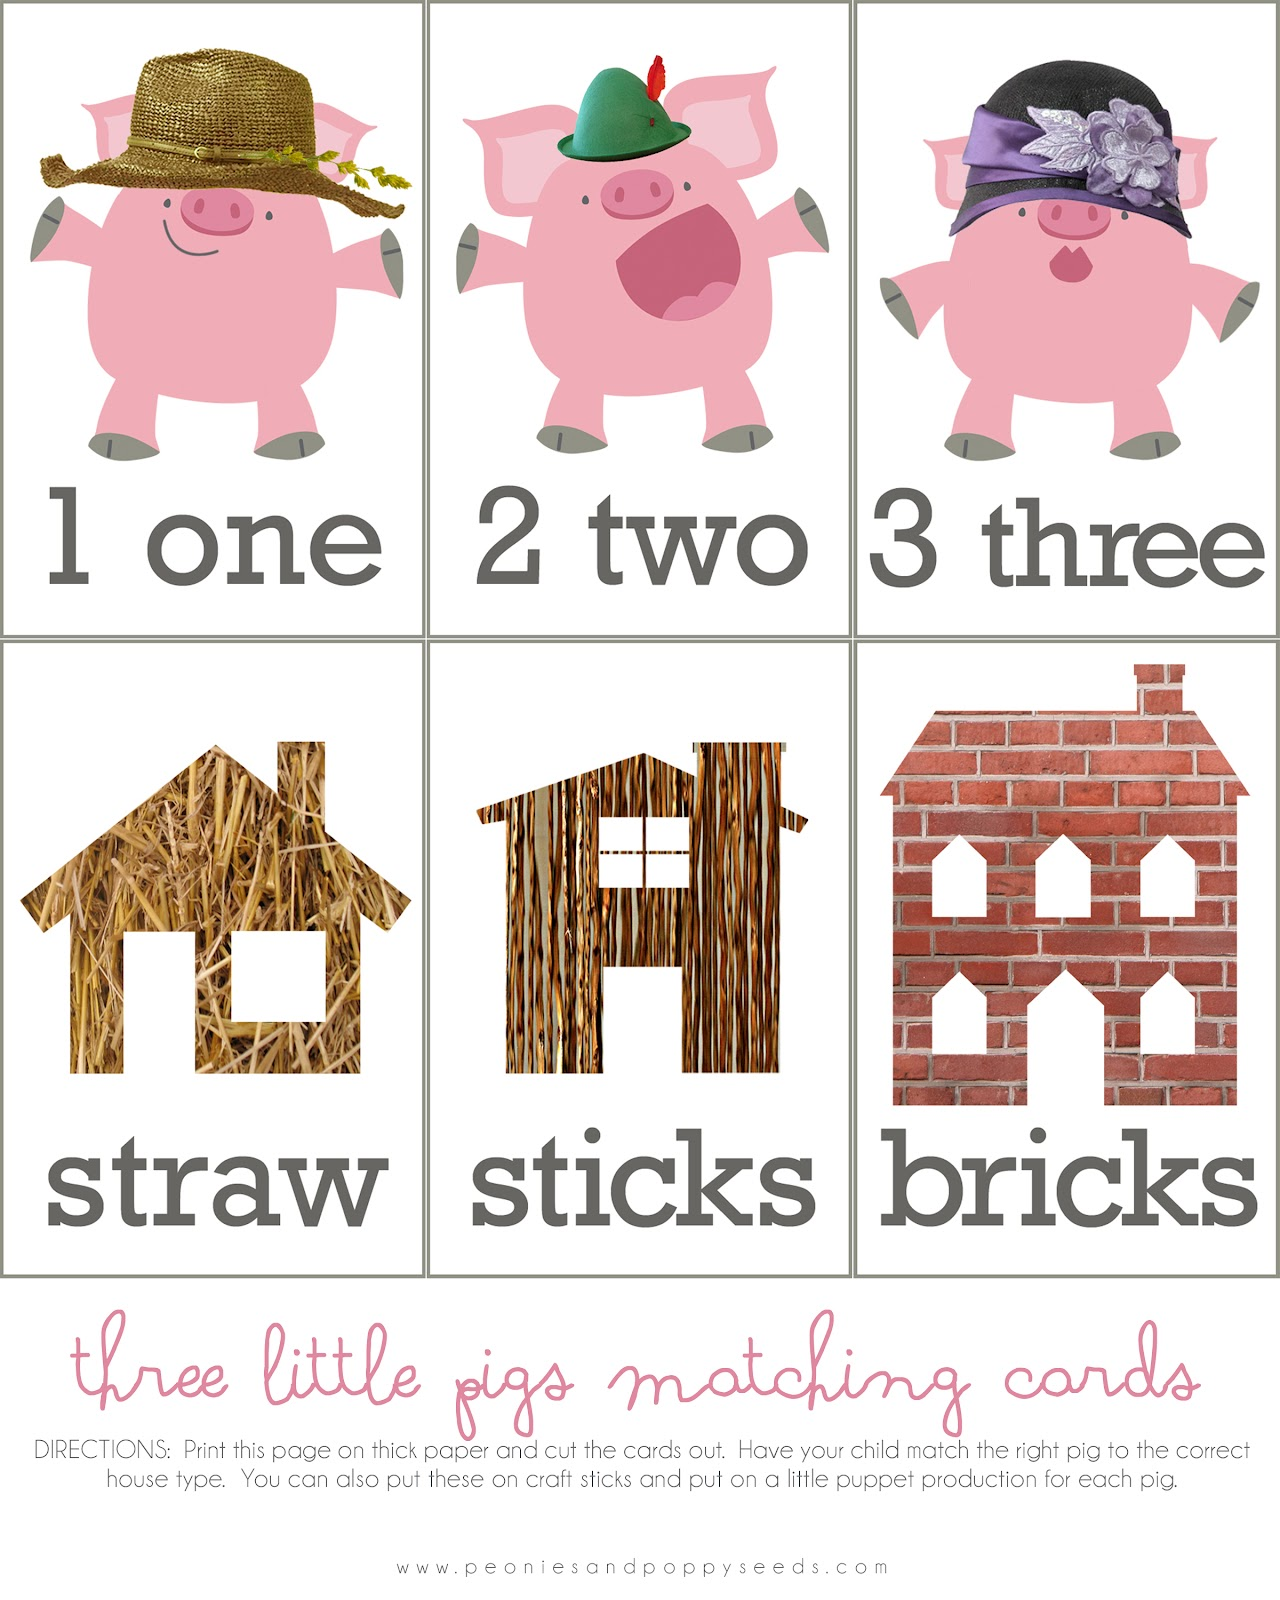 Image Three Little Pigs Story Printable Download